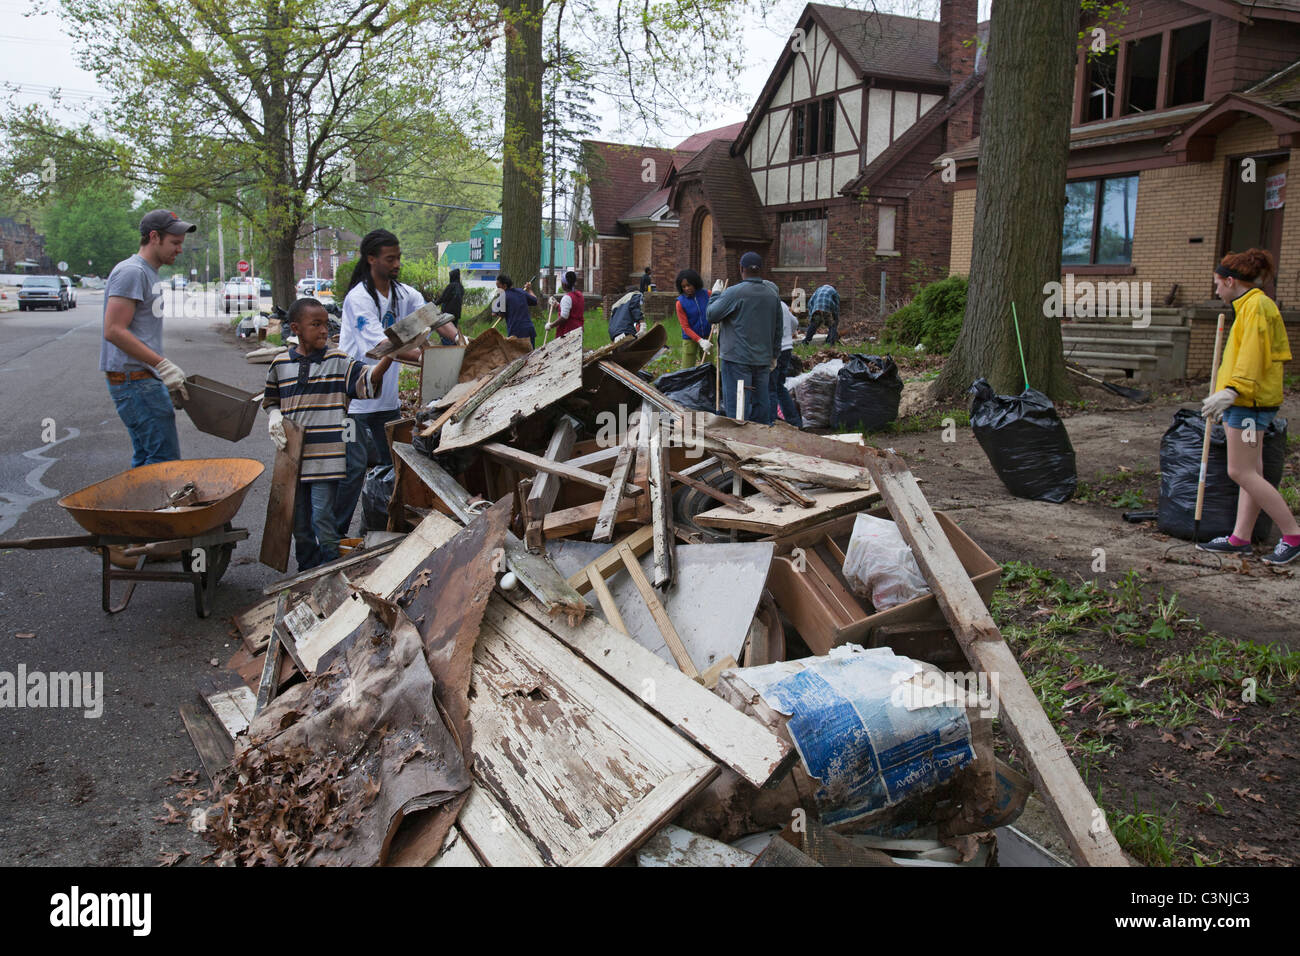 Volunteers Clean Up Trash and Debris at Vacant Homes in Detroit - Stock Image